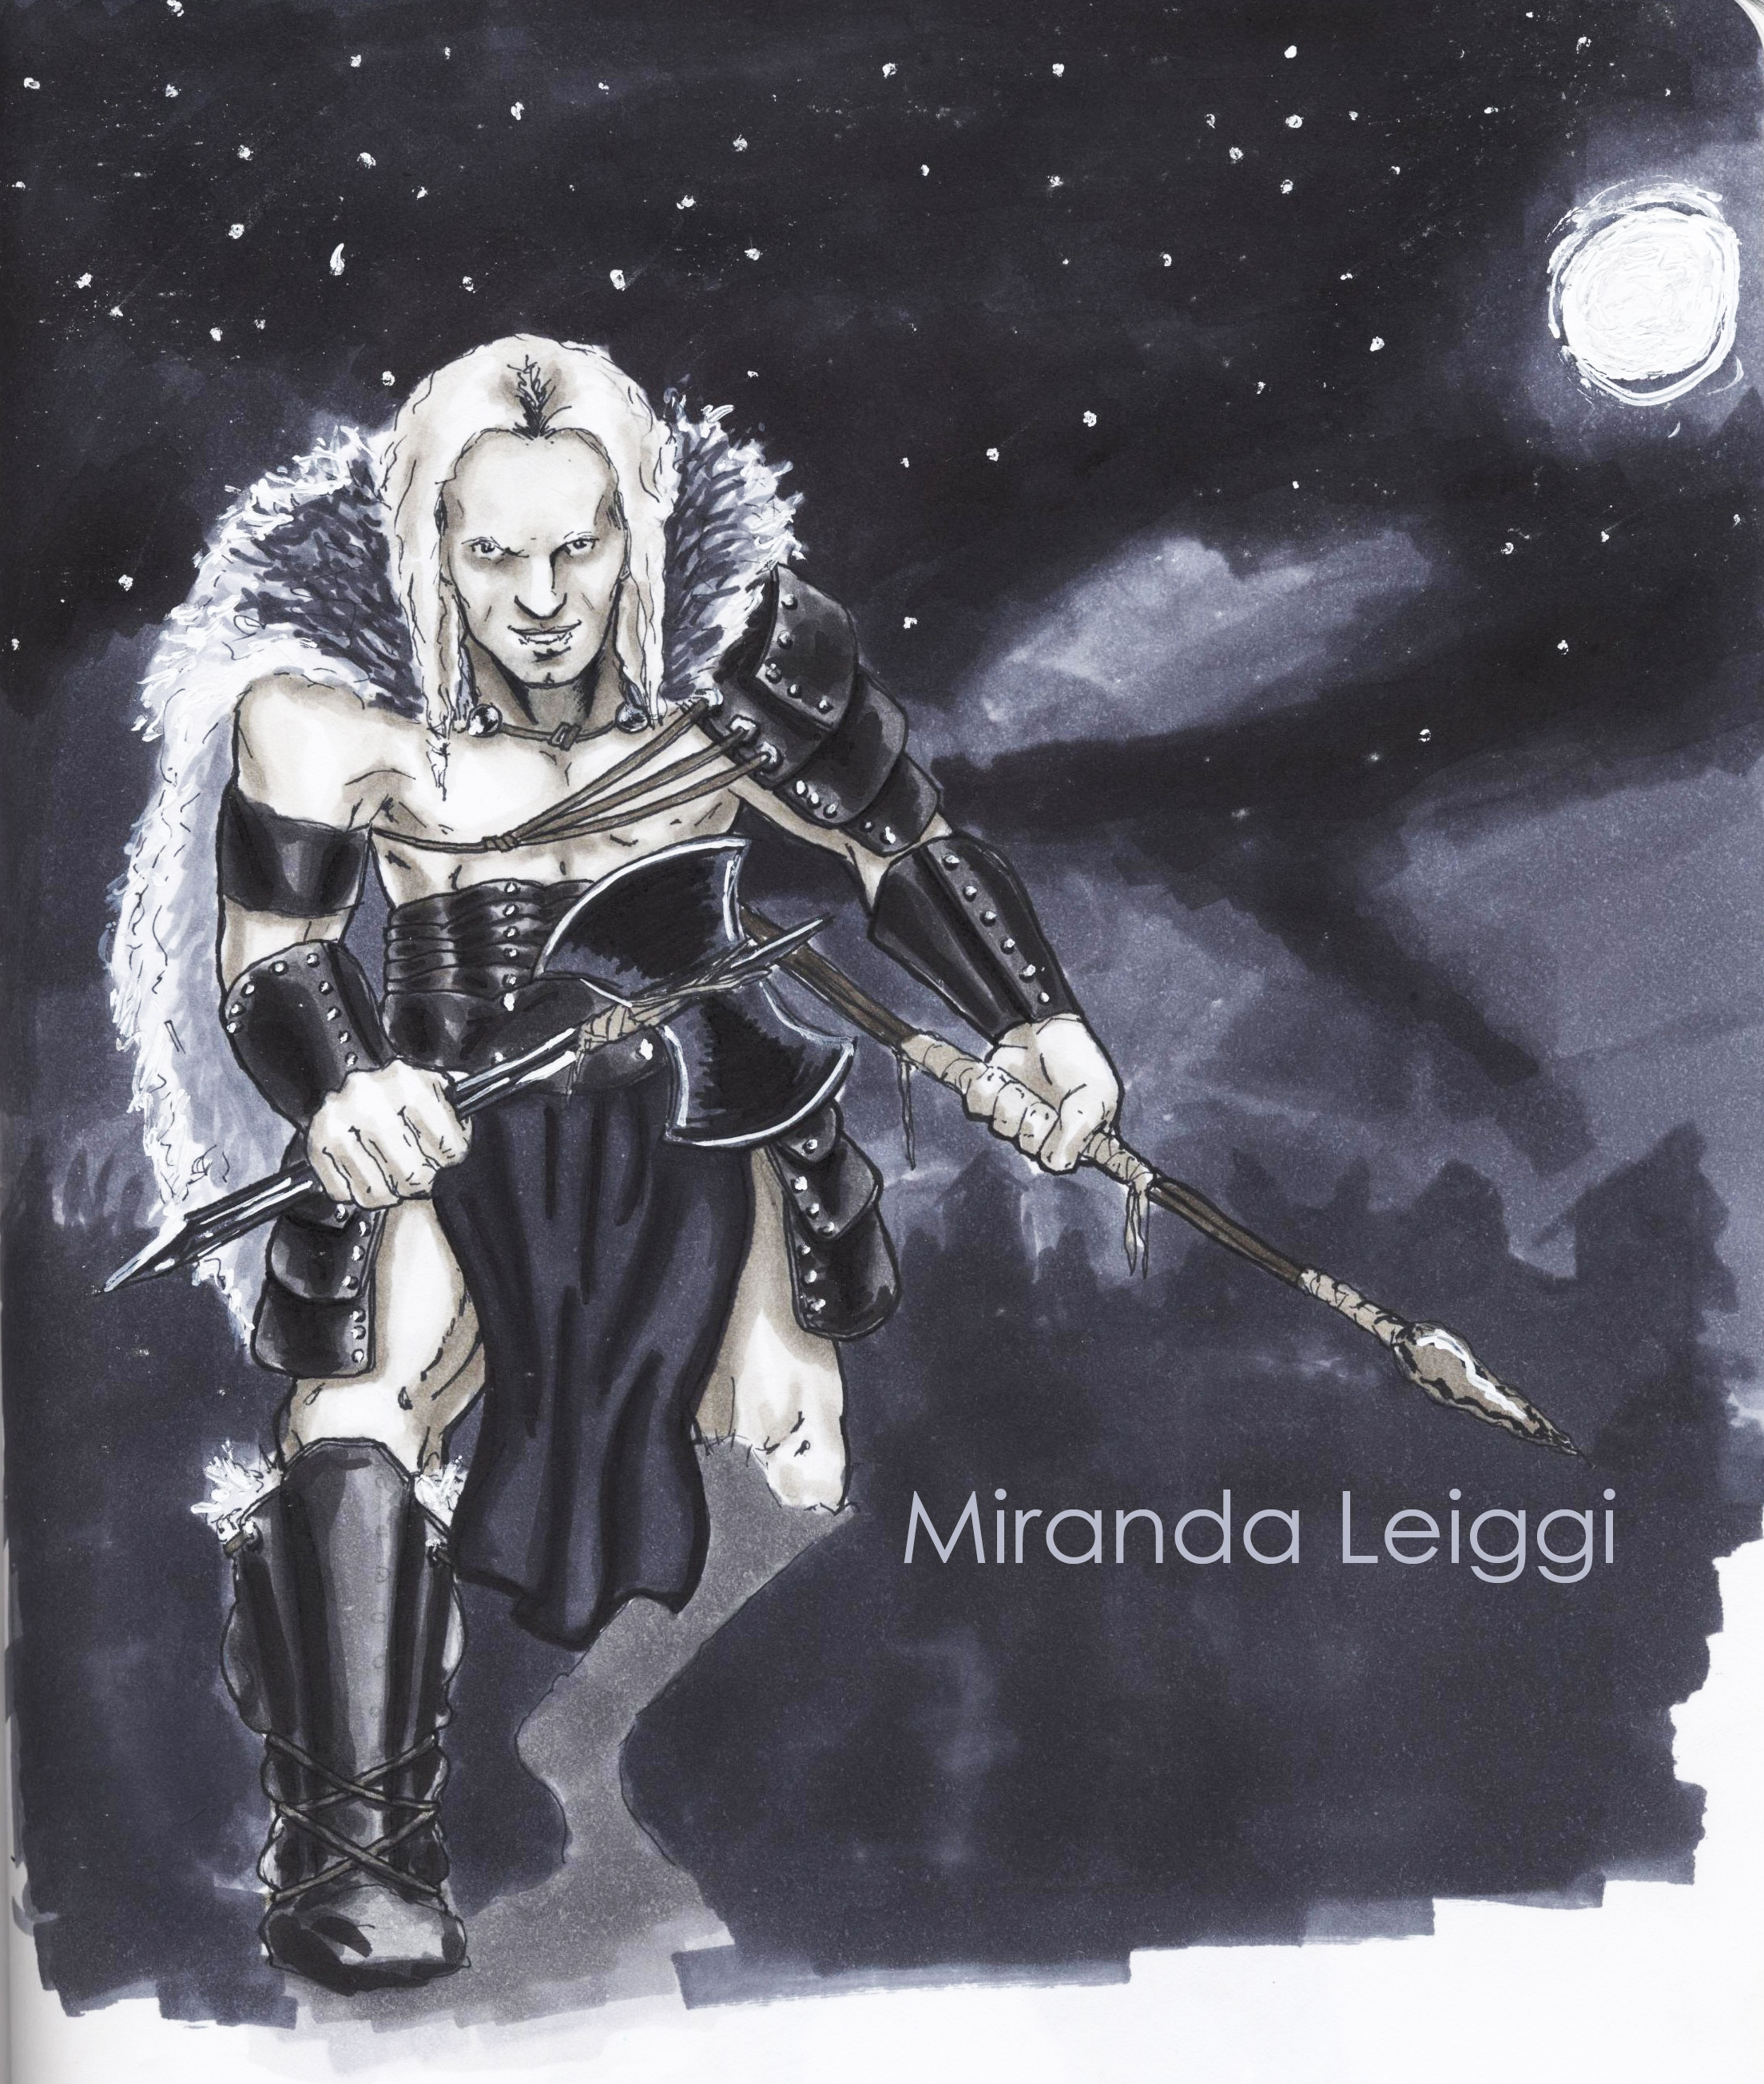 copic marker drawing, warrior, viking, barbarian, spear, axe, moon